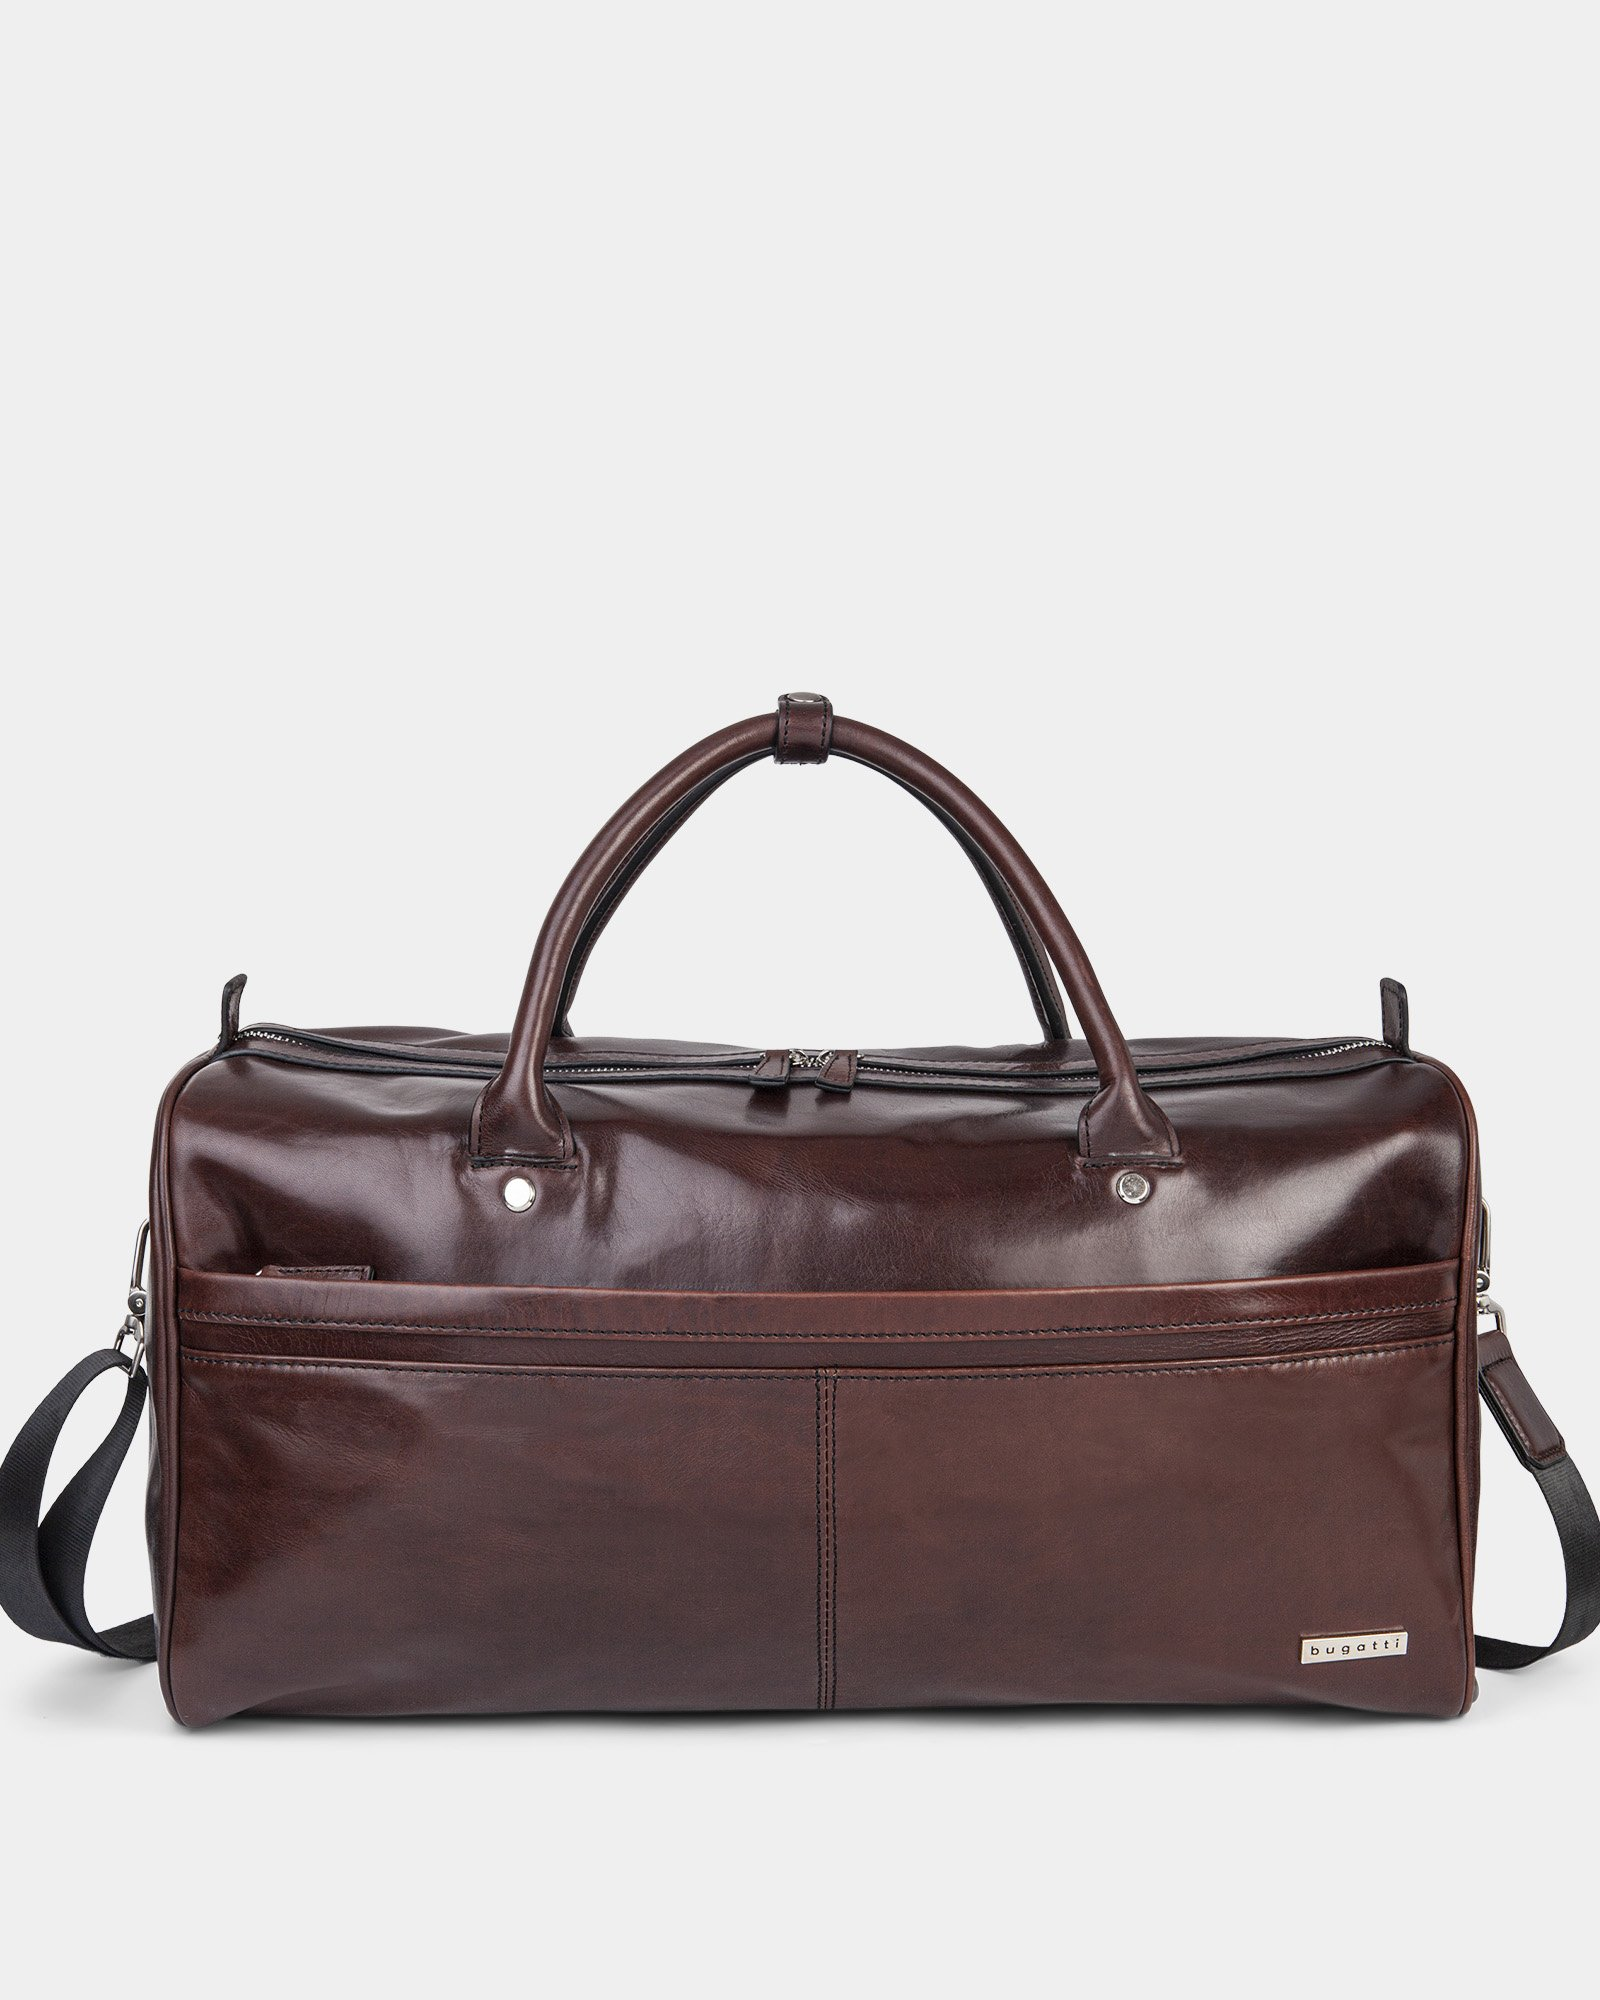 PORTO - WAXED LEATHER DUFFLE BAG WITH PADDED SLEEVE section - BROWN - Bugatti - Zoom